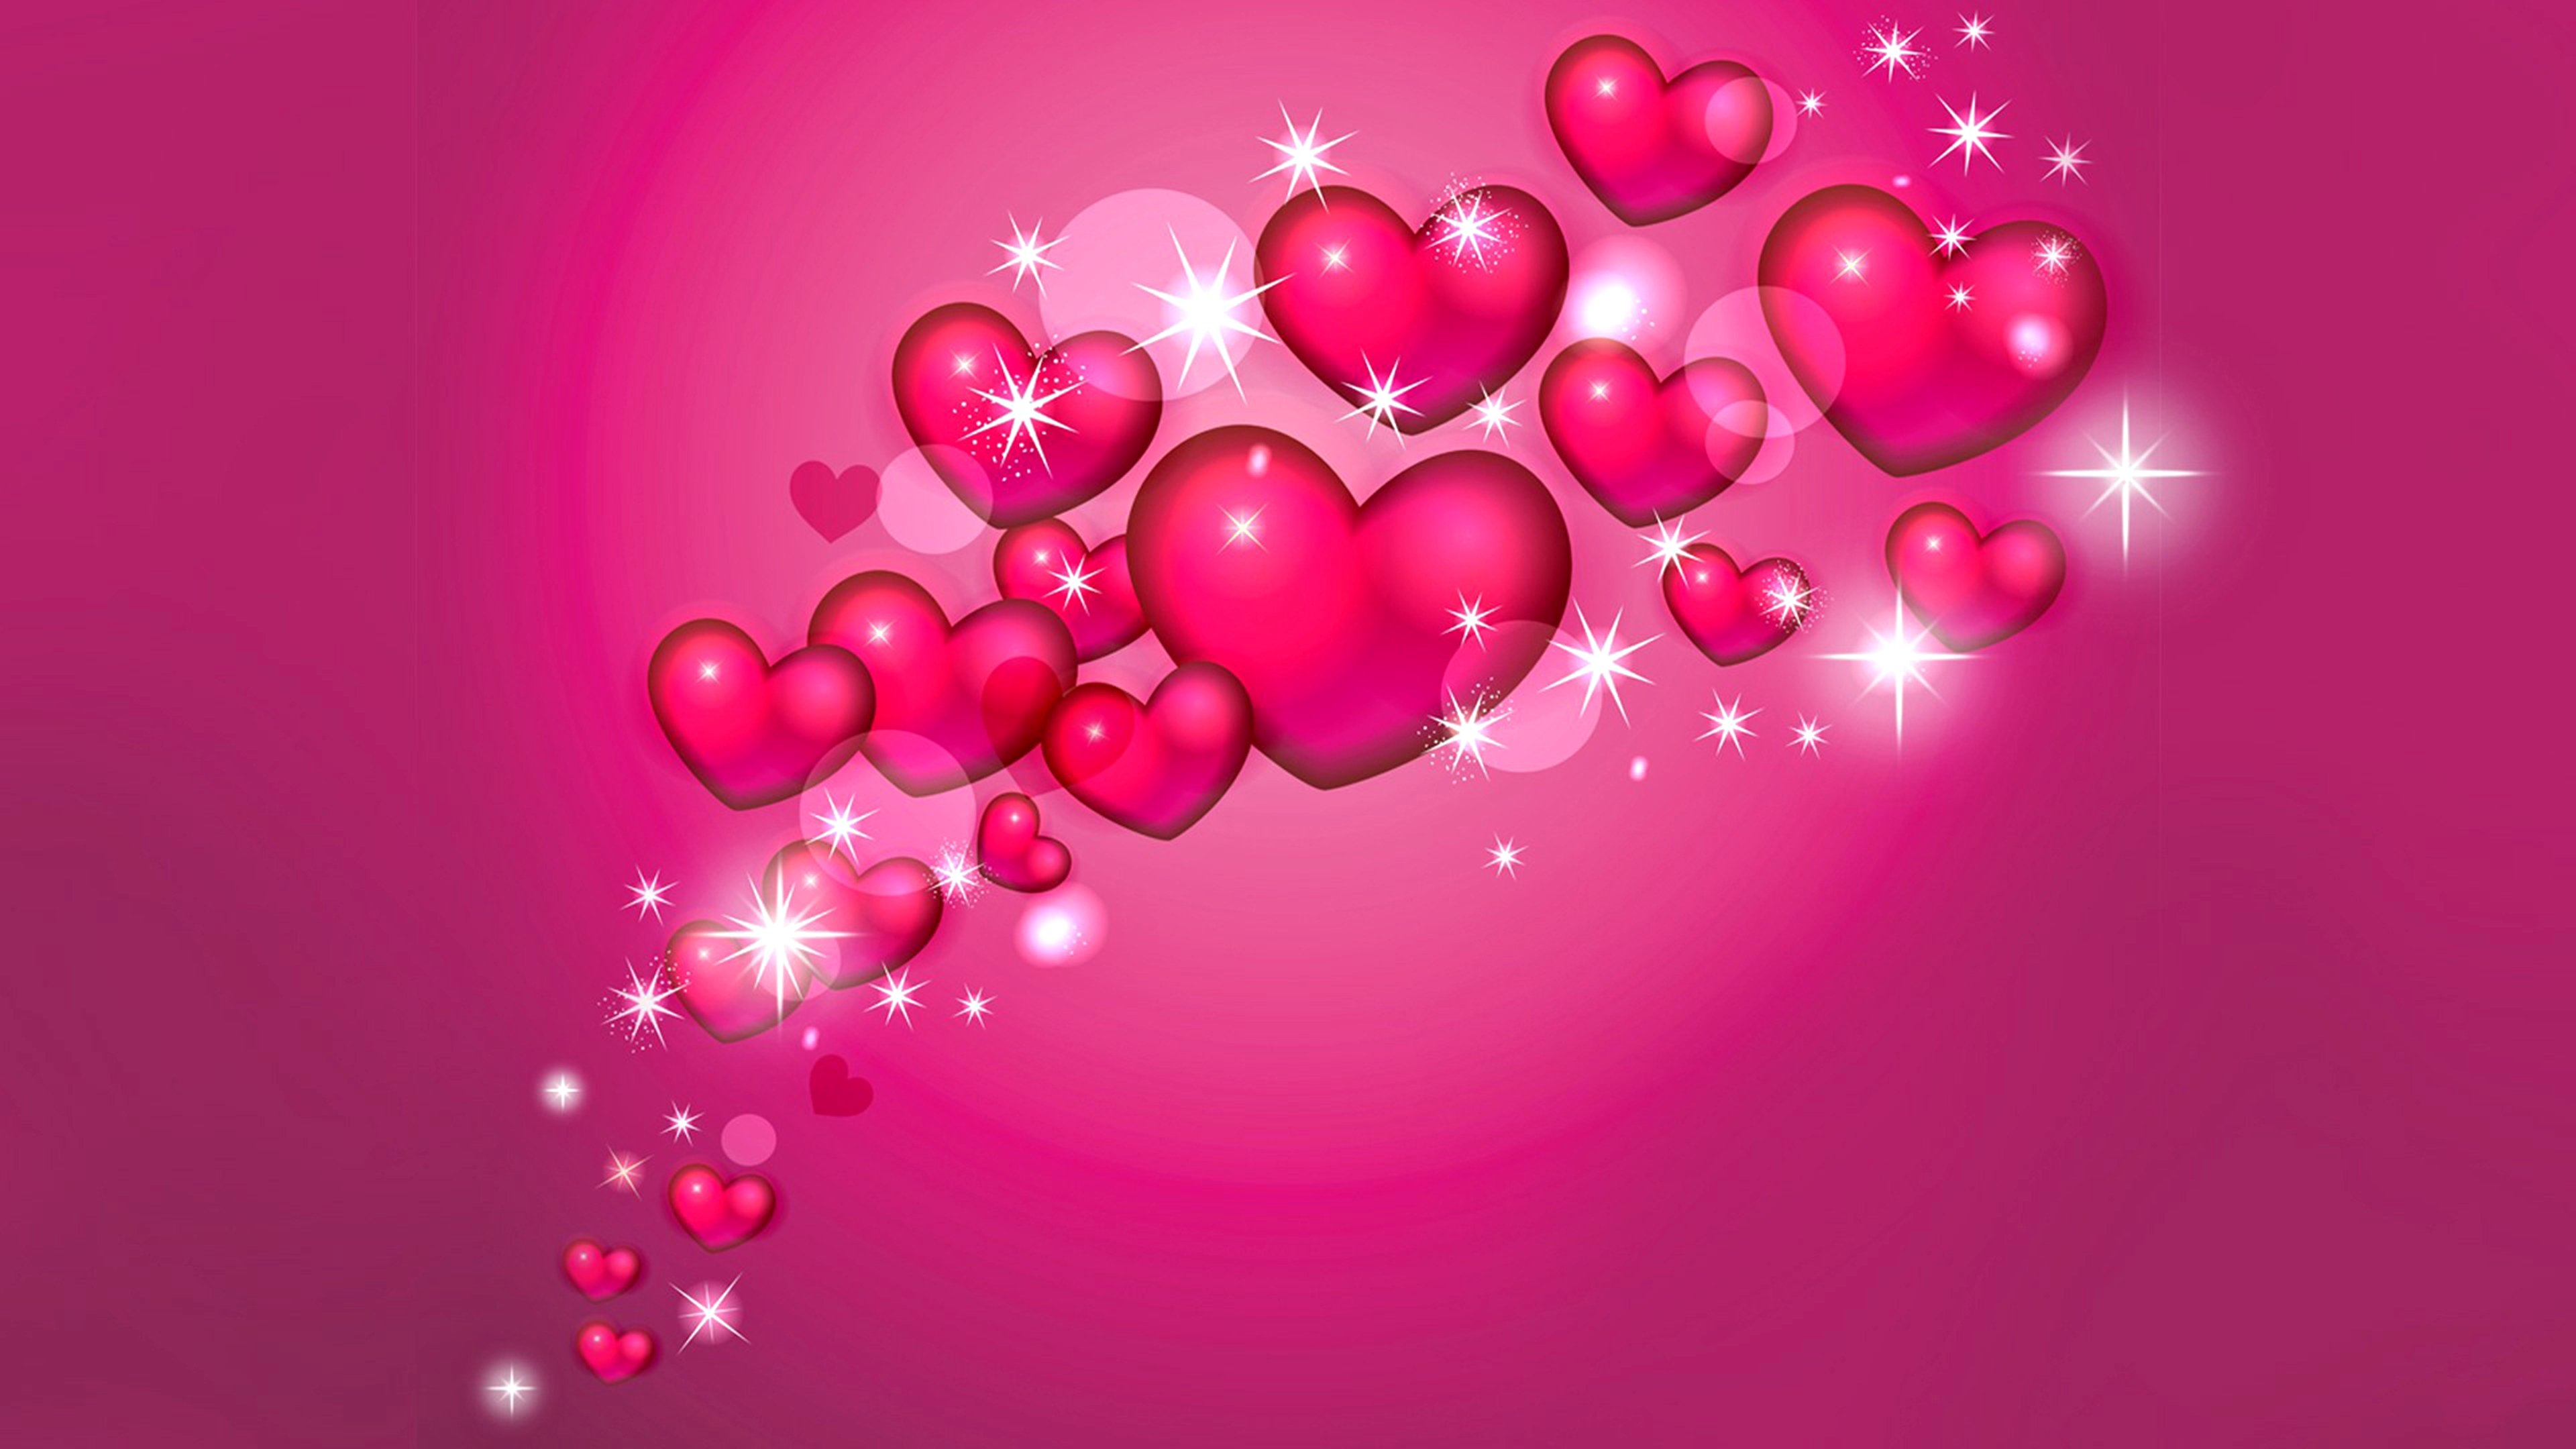 Valentine Heart Desktop Wallpaper - WallpaperSafari